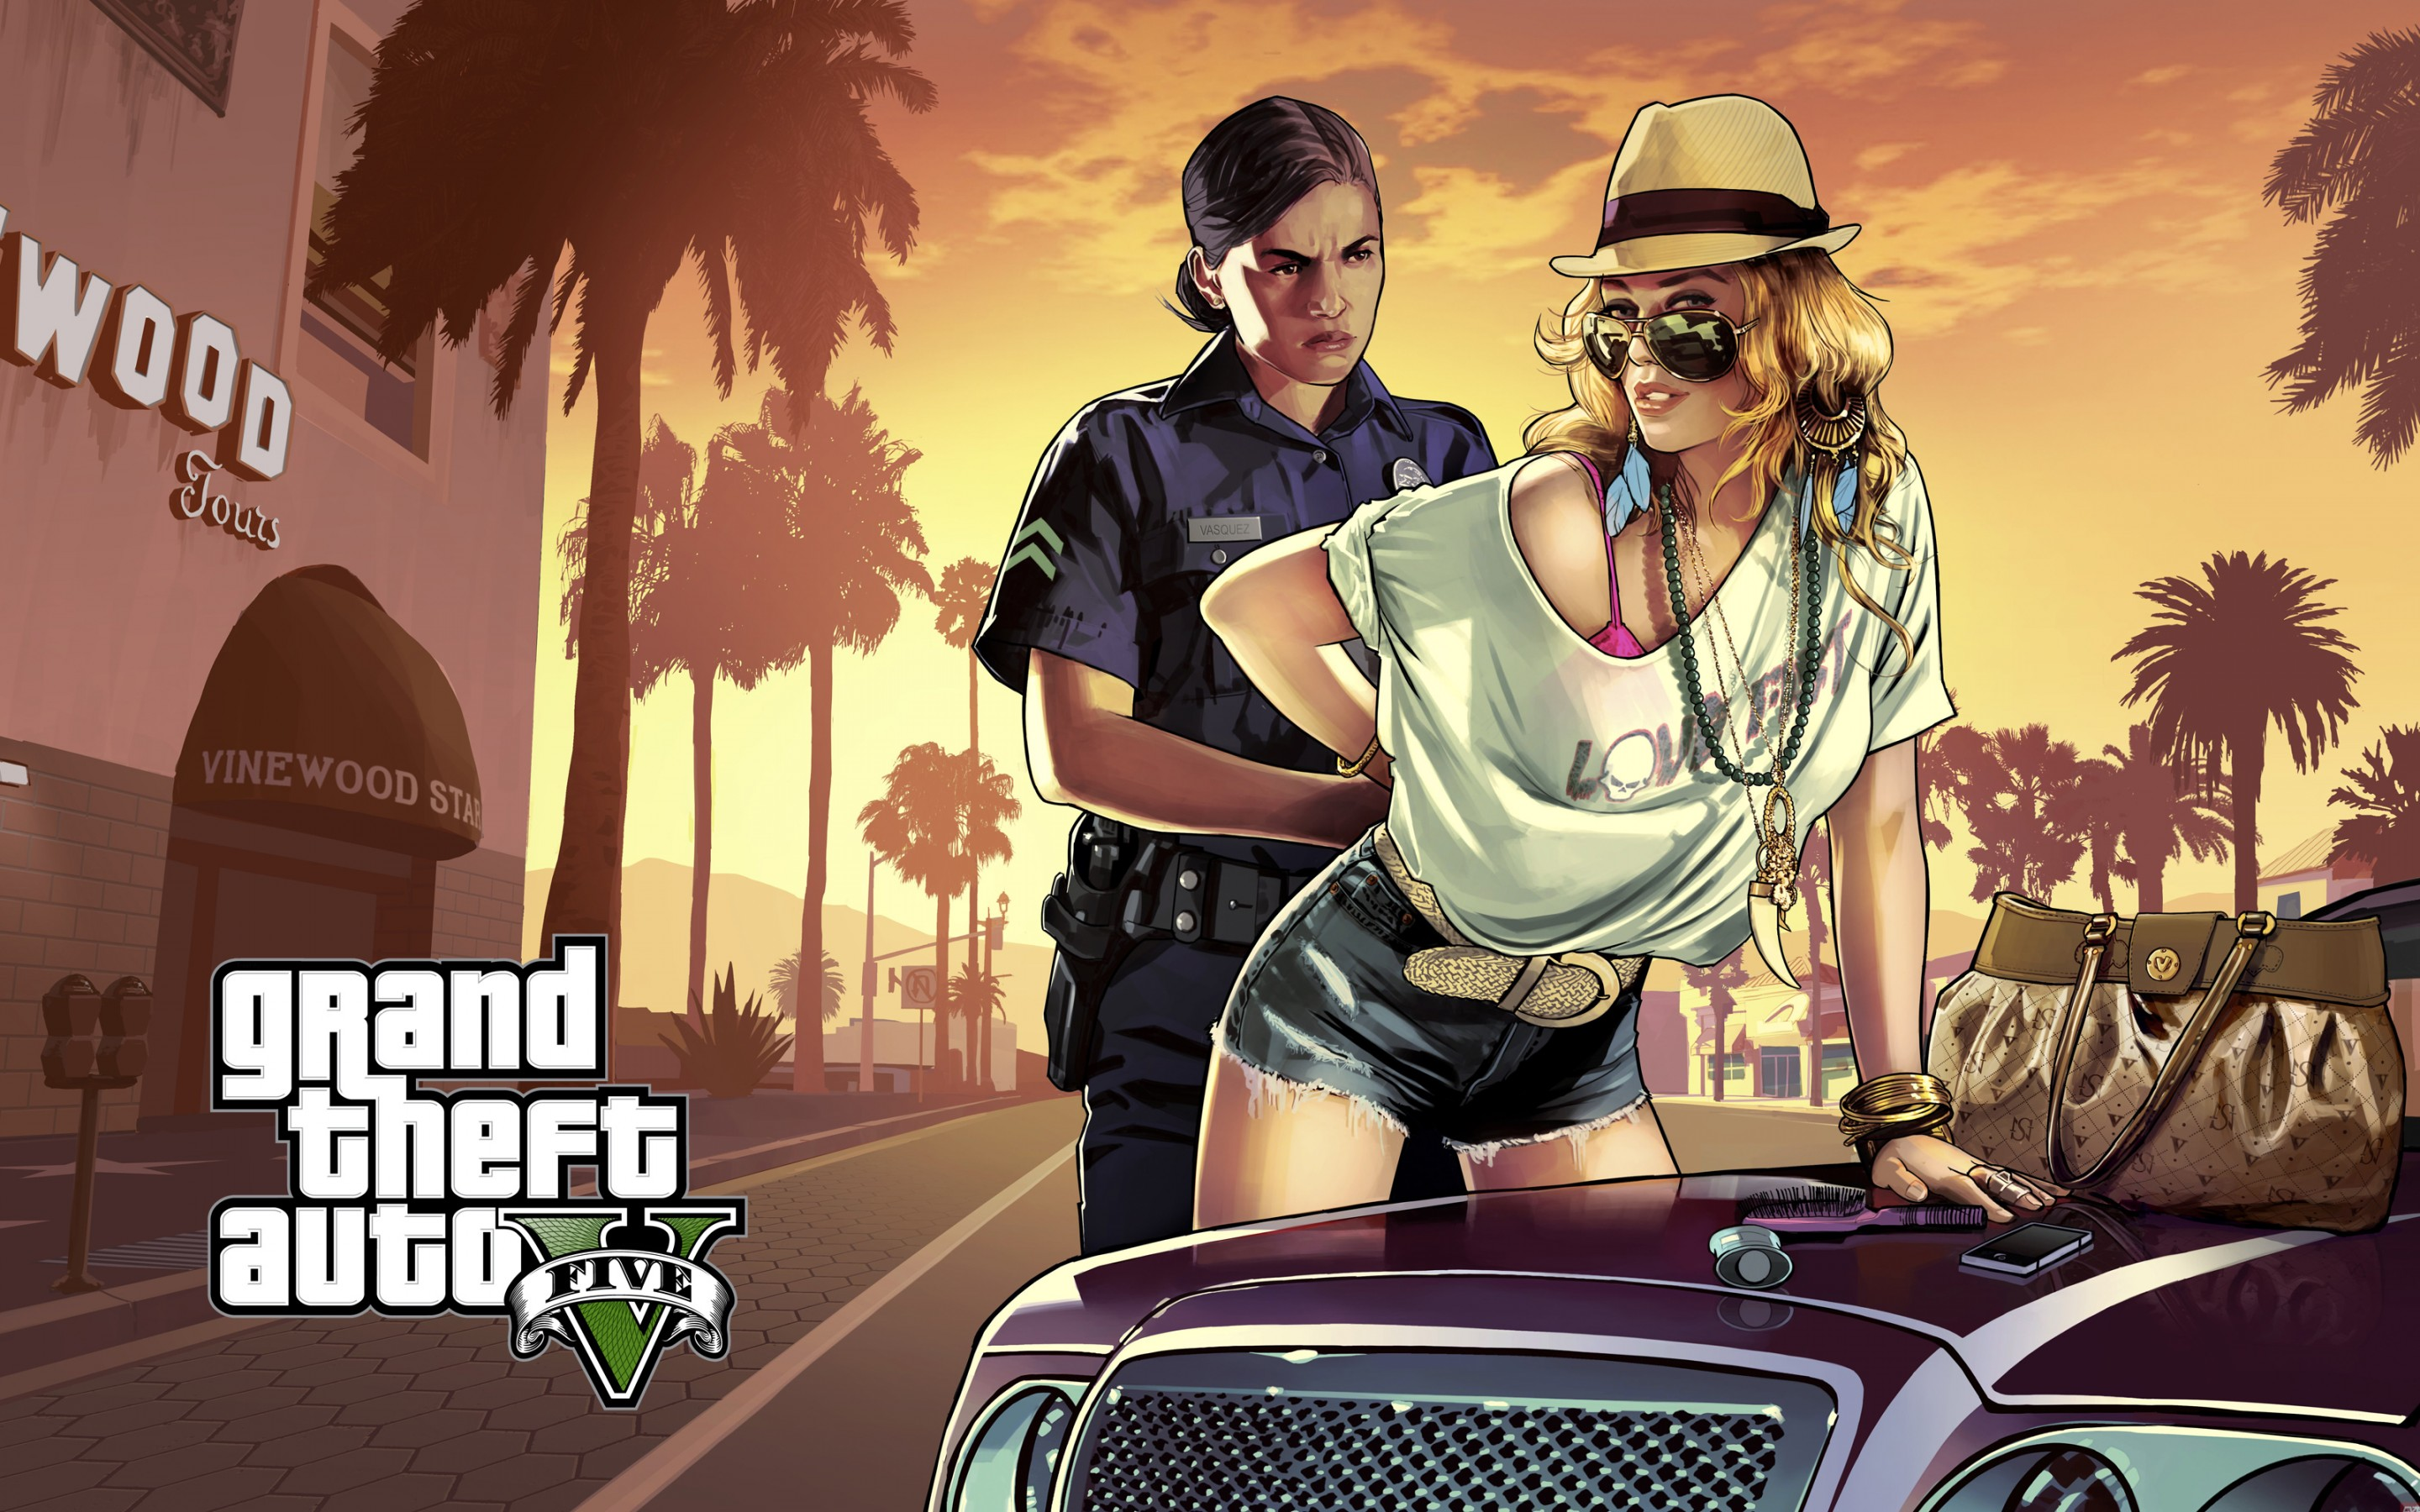 Cars Wallpaper Gta 2013 Grand Theft Auto Gta V Wallpapers Hd Wallpapers